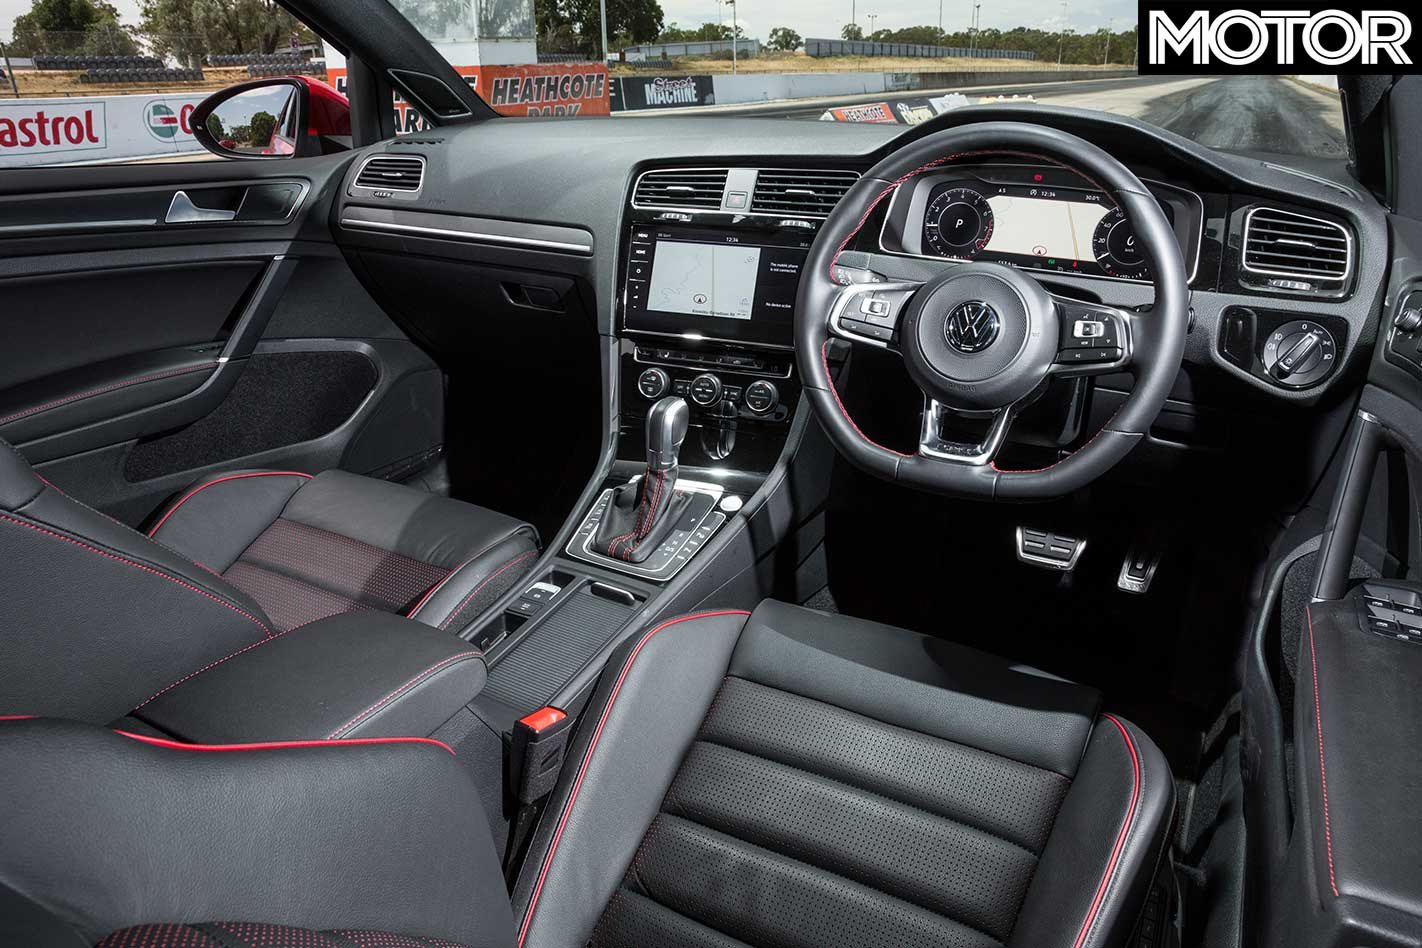 2019 Volkswagen Golf Gti Review Motor